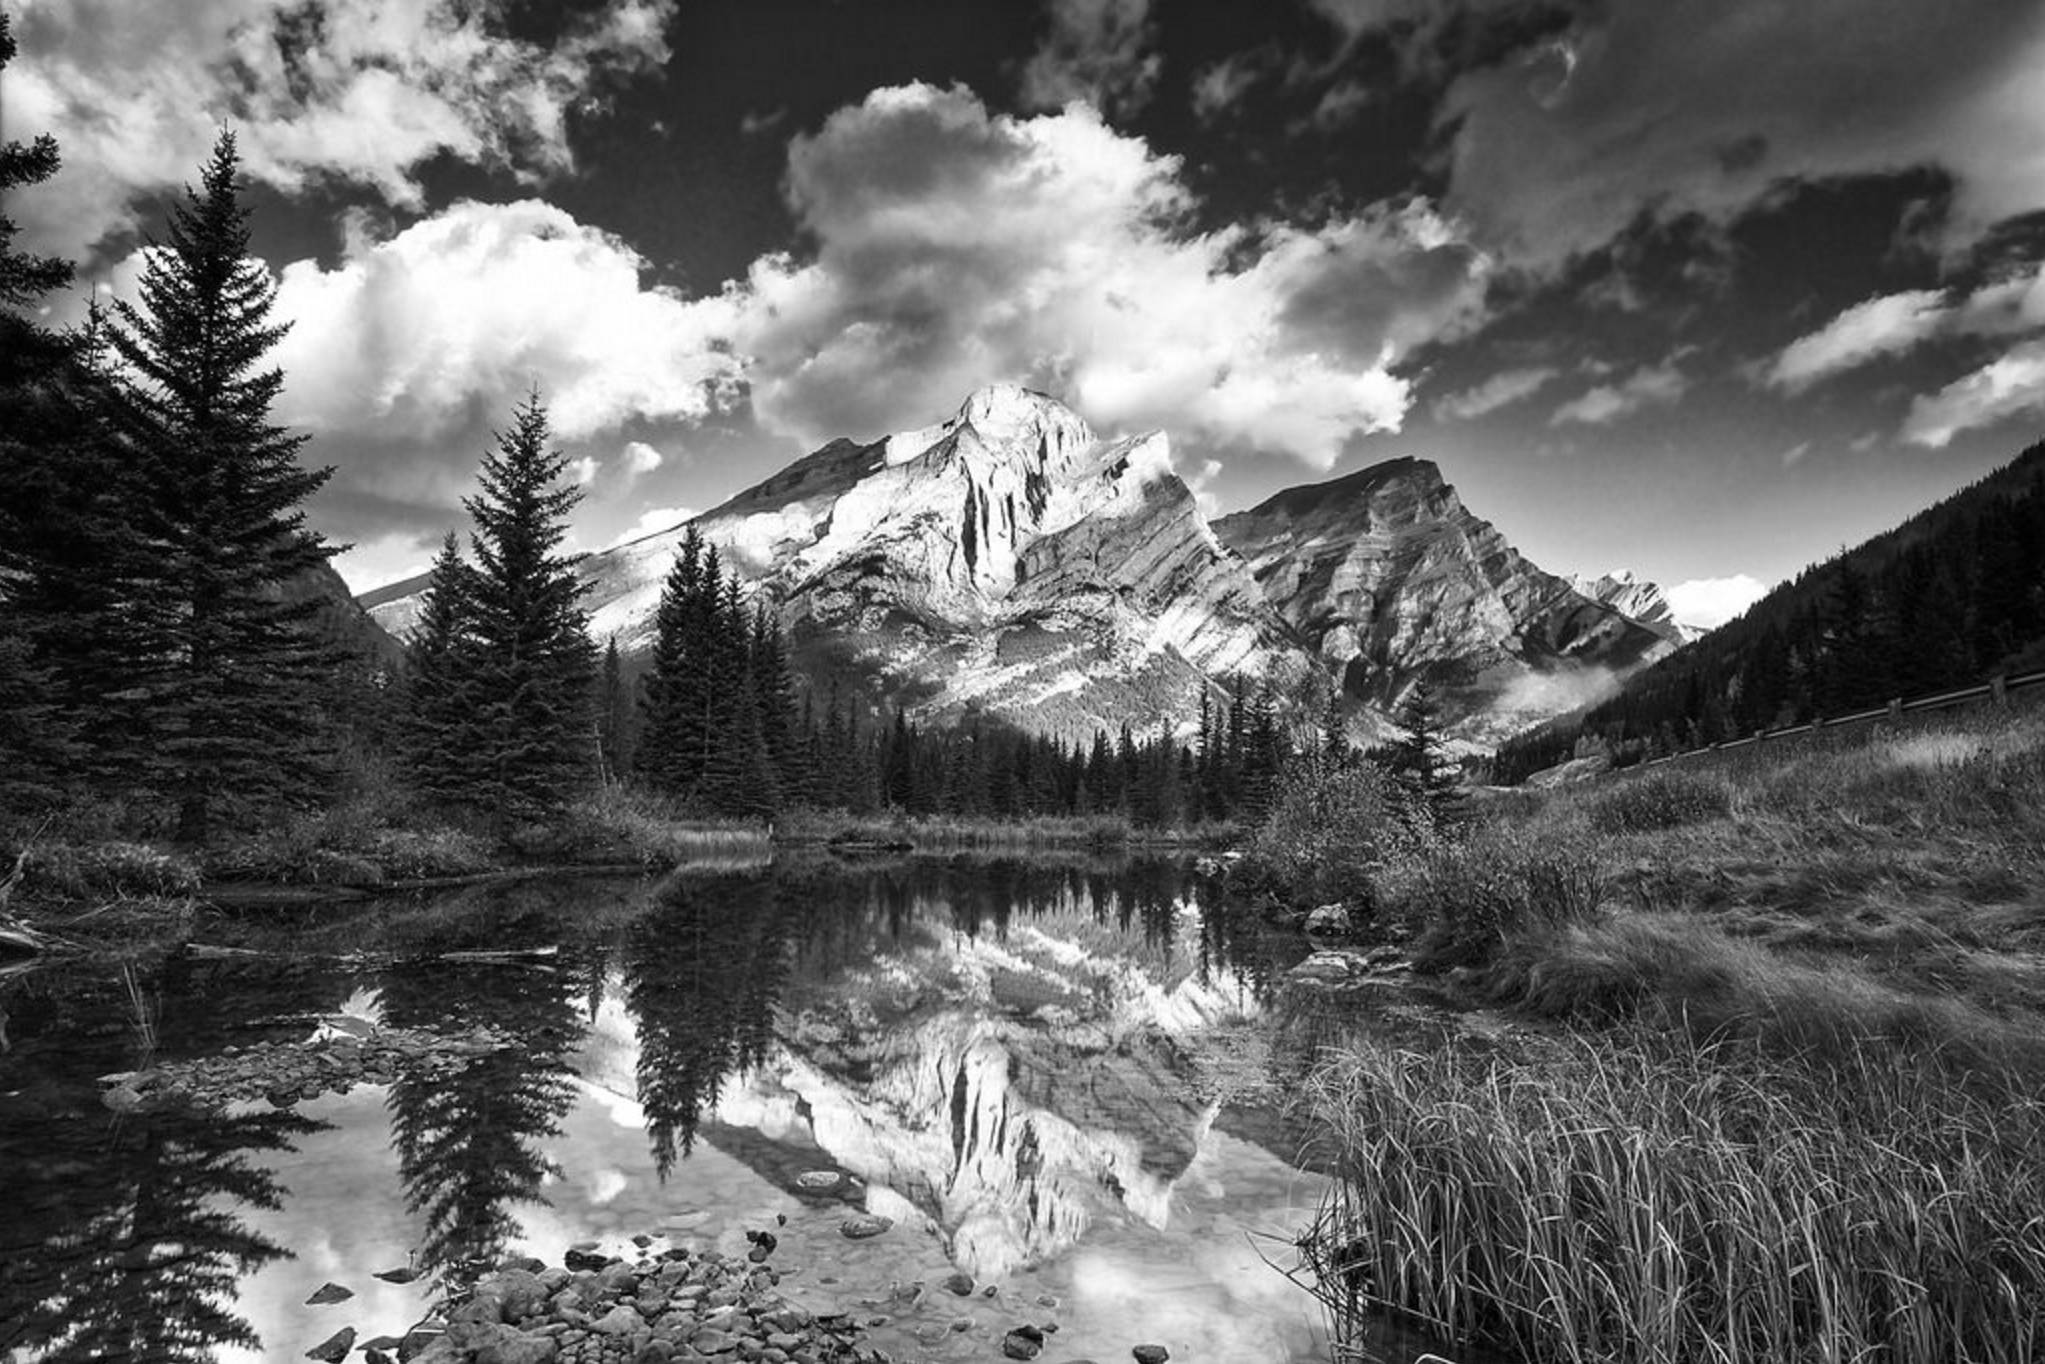 Mt. Kidd by Dan Warkentin